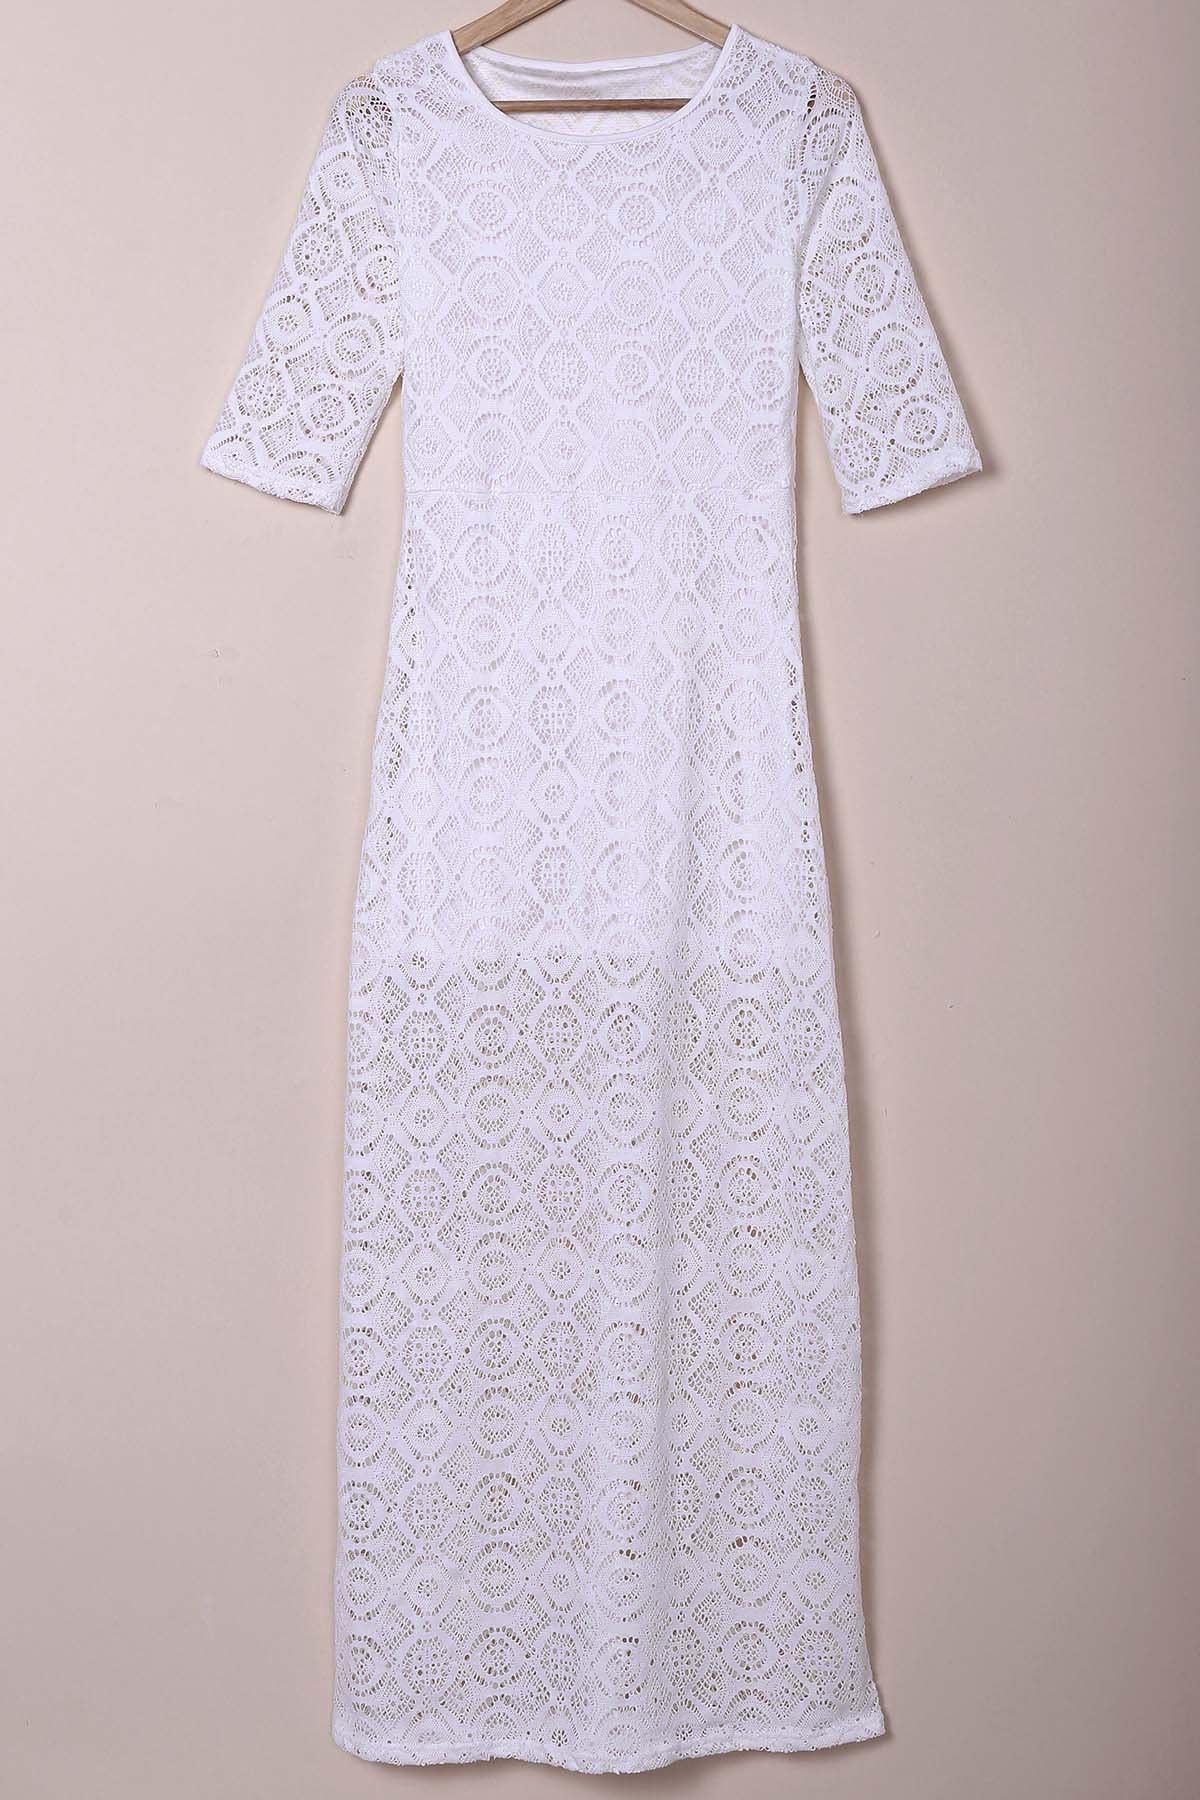 Simple 3/4 Sleeve Round Collar Solid Color Women's Maxi Dress - WHITE S